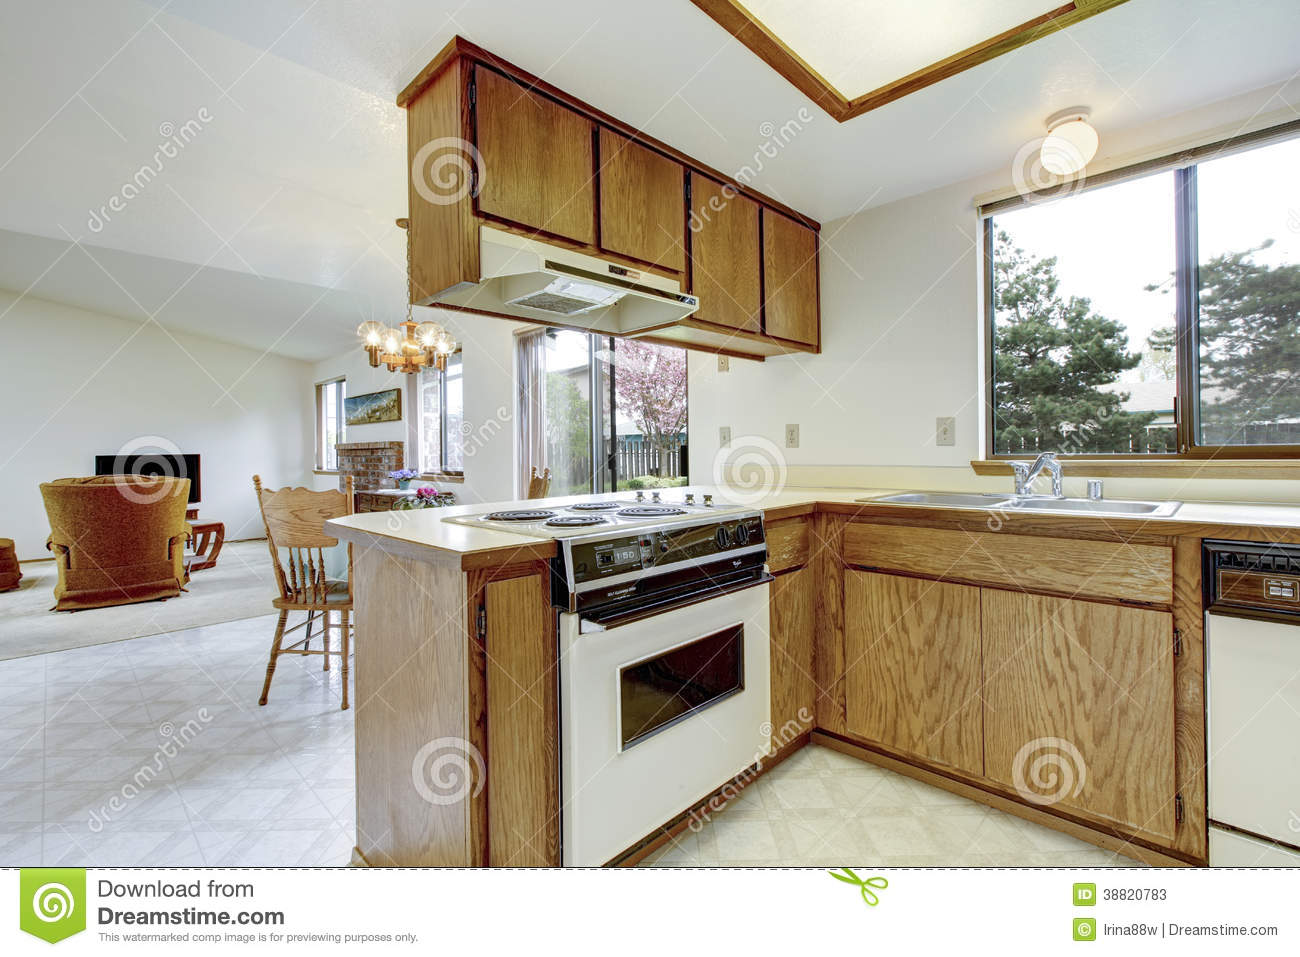 Simple kitchen room interior stock photo image 38820783 for Simple kitchen